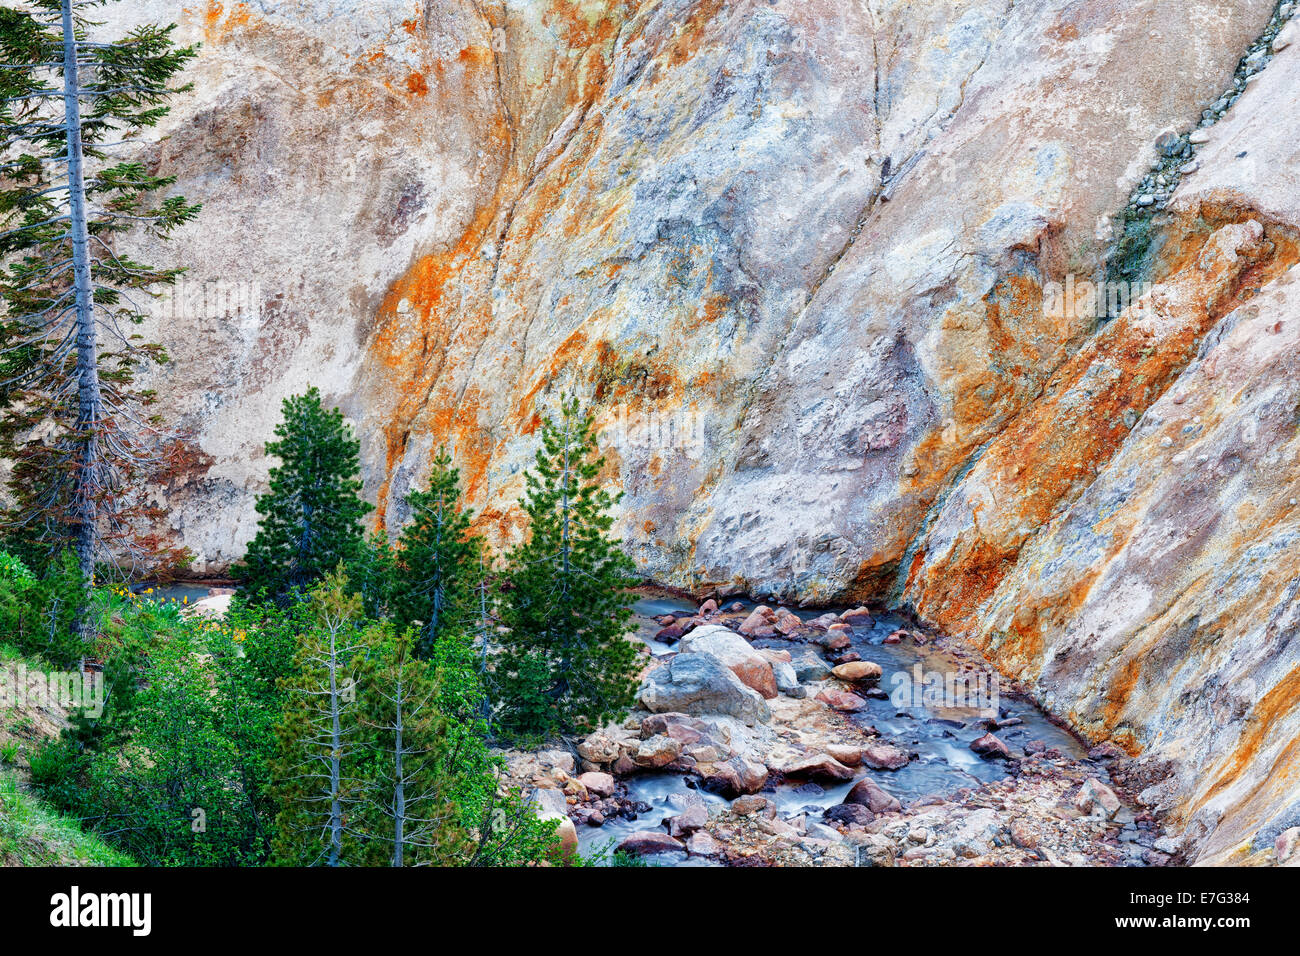 East Sulfur Creek passes the canyon walls of thermal mineral deposits left in California's Mt Lassen Volcanic National - Stock Image